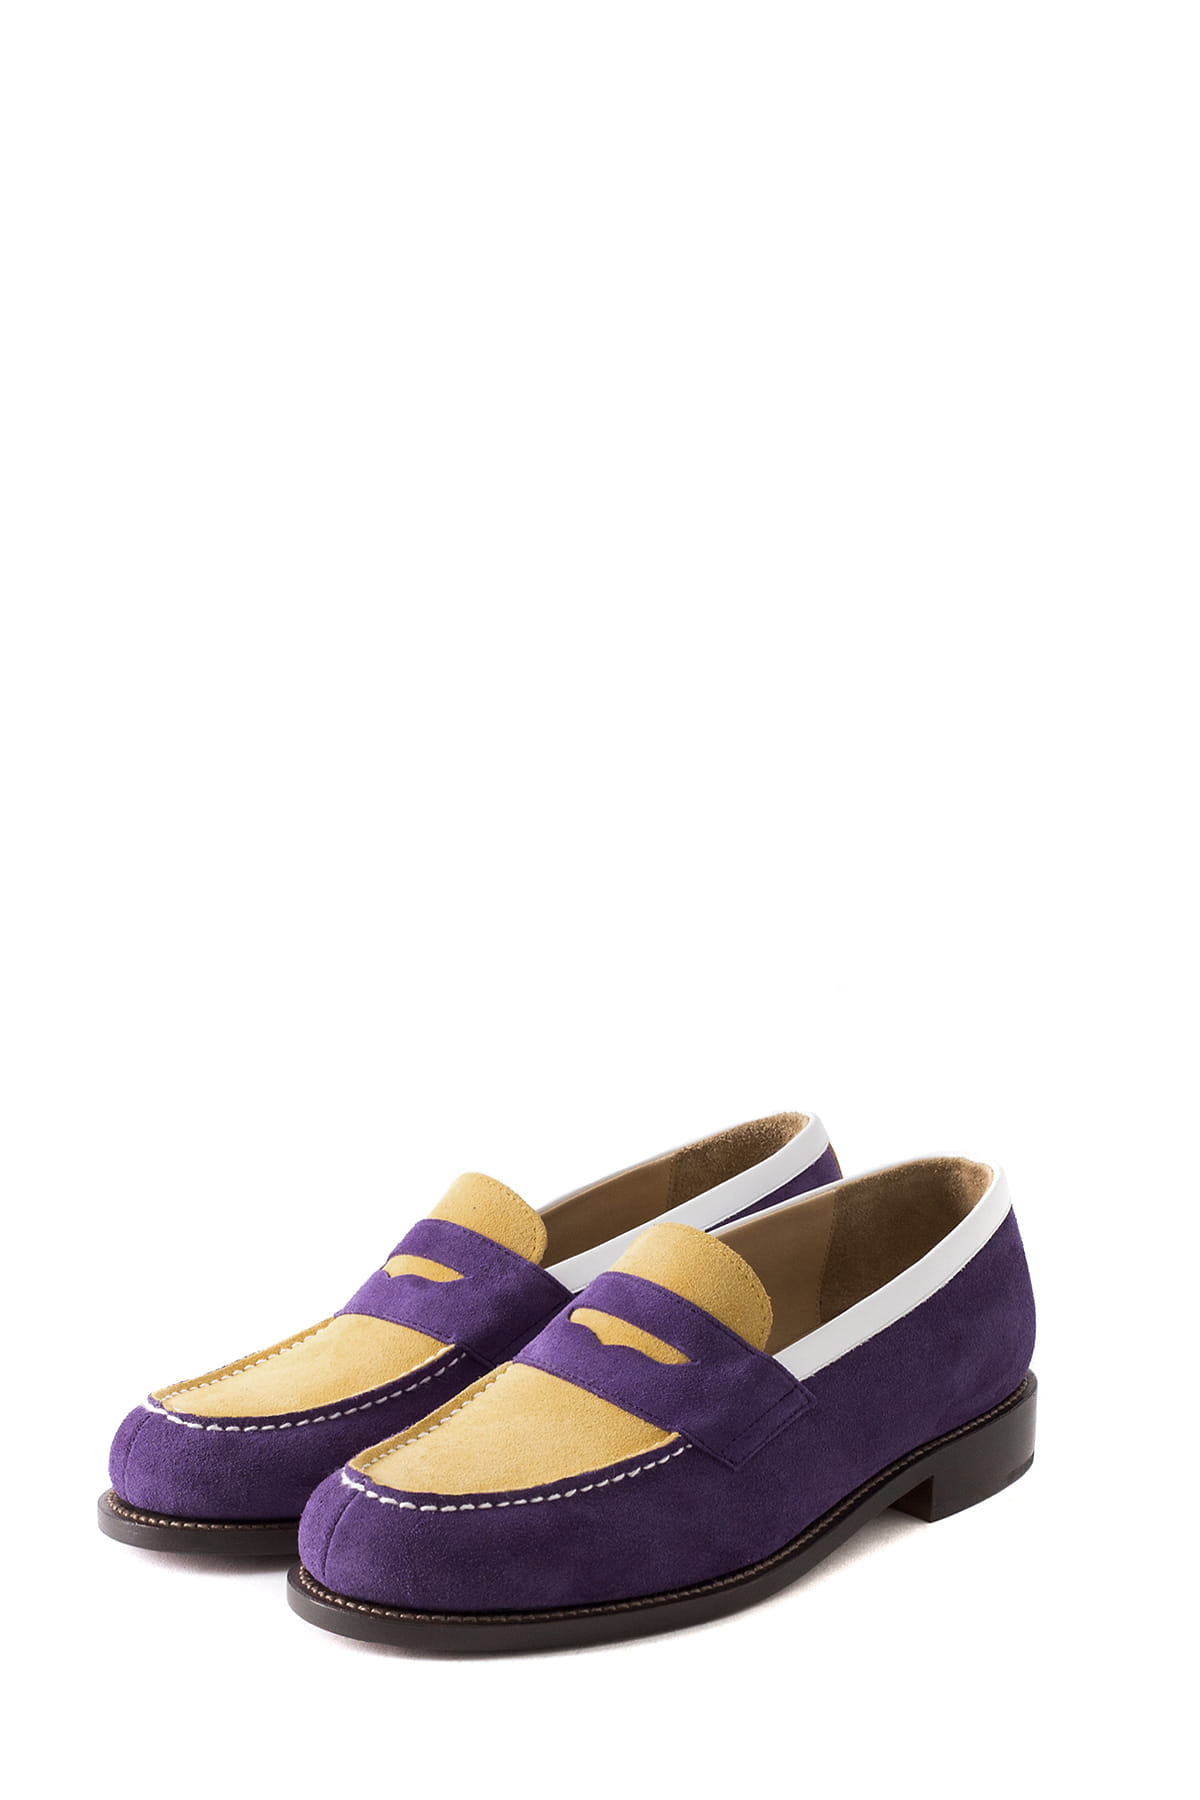 Hender Scheme : Typical Color Exception Loafer (Purple)